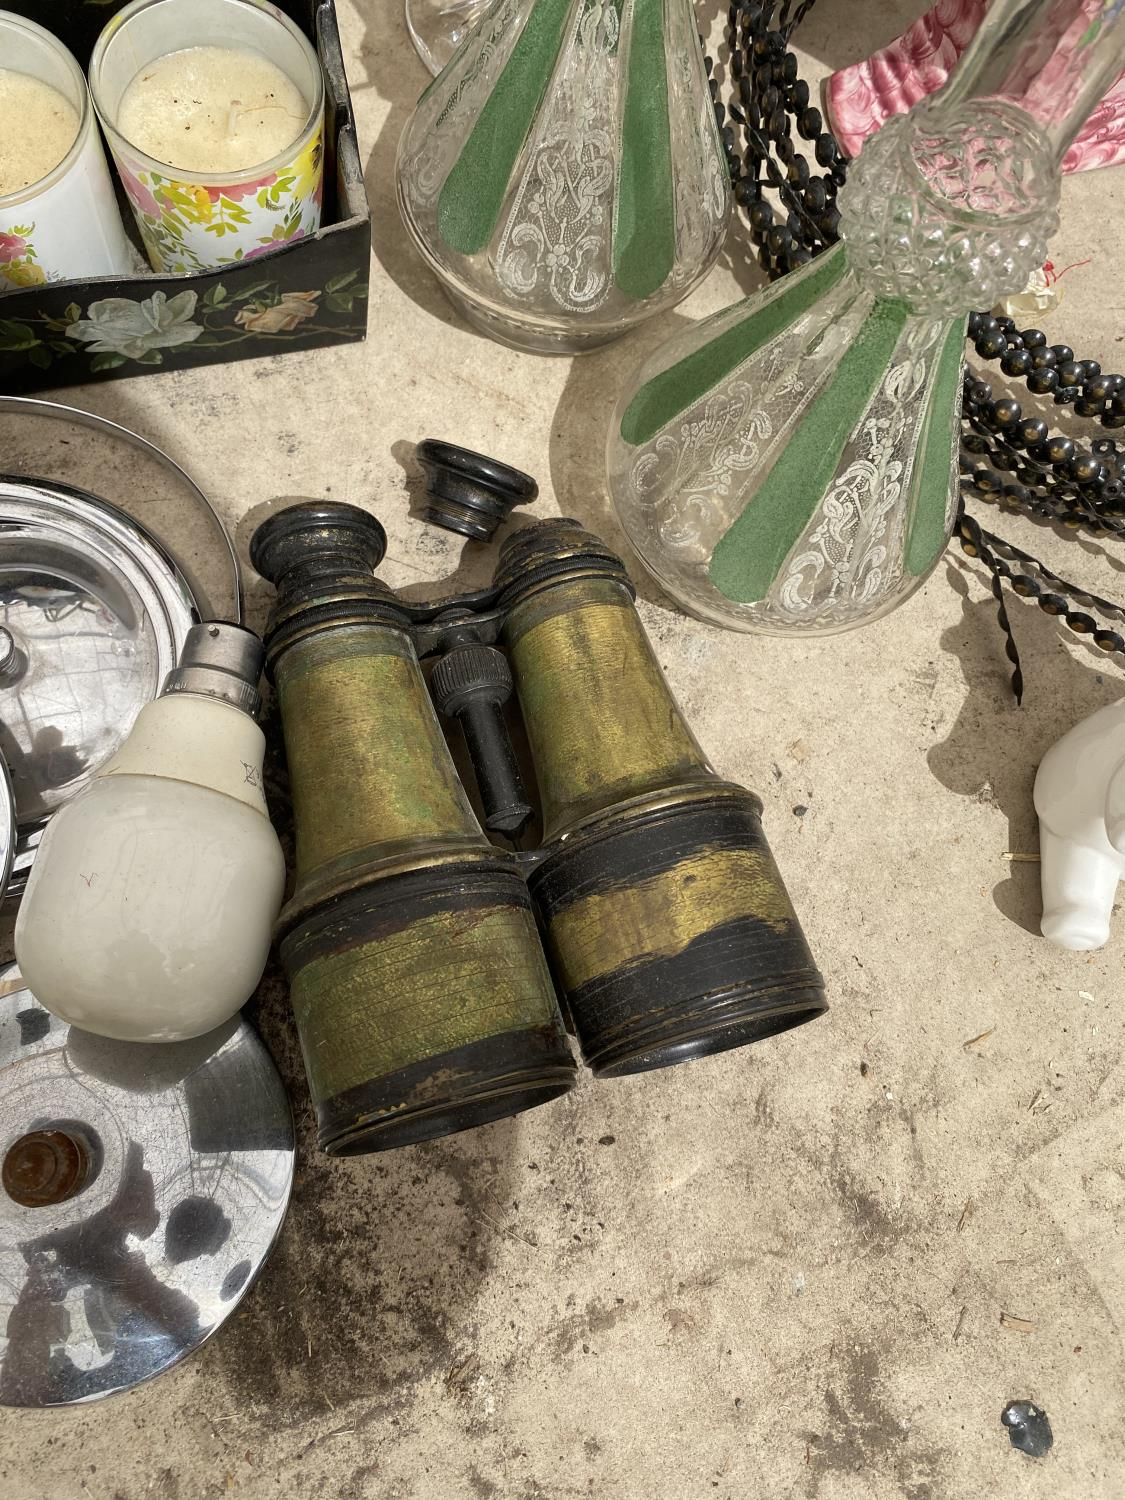 A LARGE ASSORTMENT OF ITEMS TO INCLUDE ORIENTAL STYLE JUG AND WASH BOWL, CERAMIC LAMP AND GLASS - Image 3 of 5